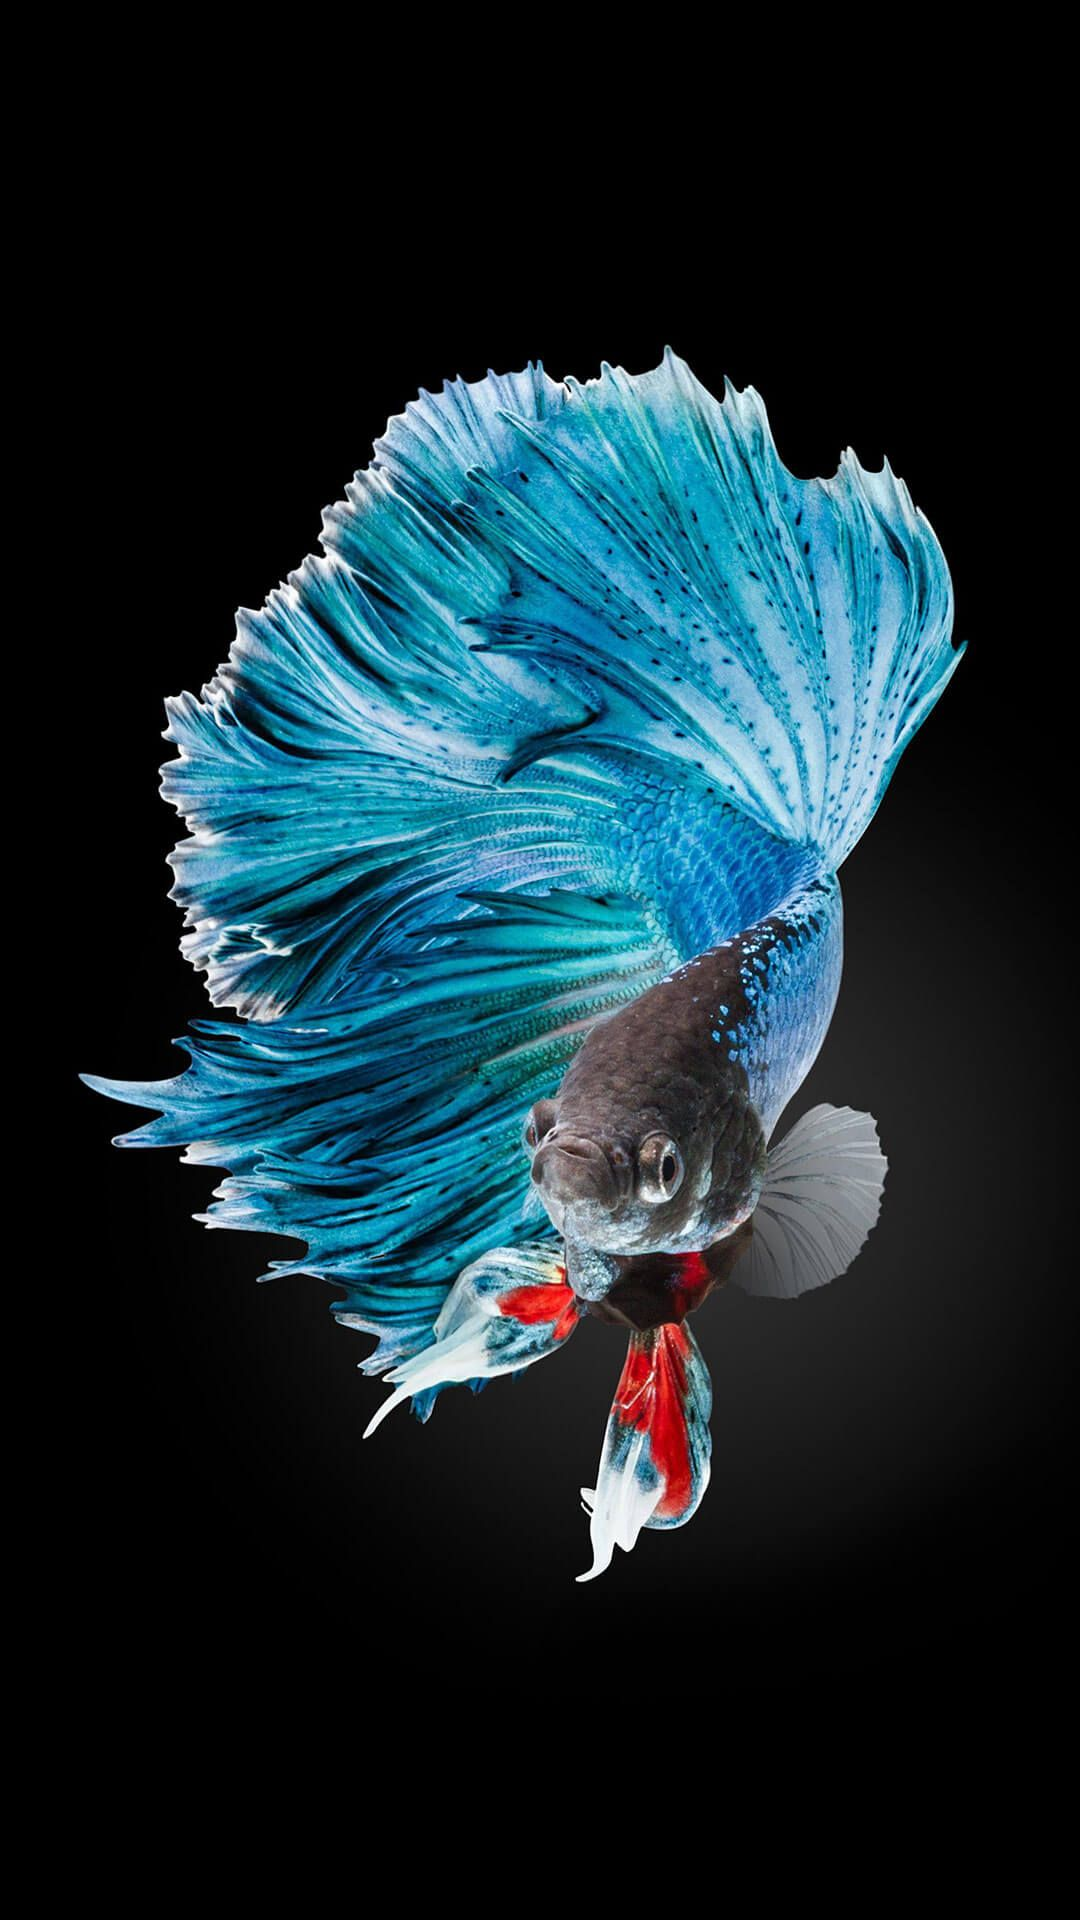 betta fish wallpaper iphone 6 and iphone 6s hd | animal wallpaper